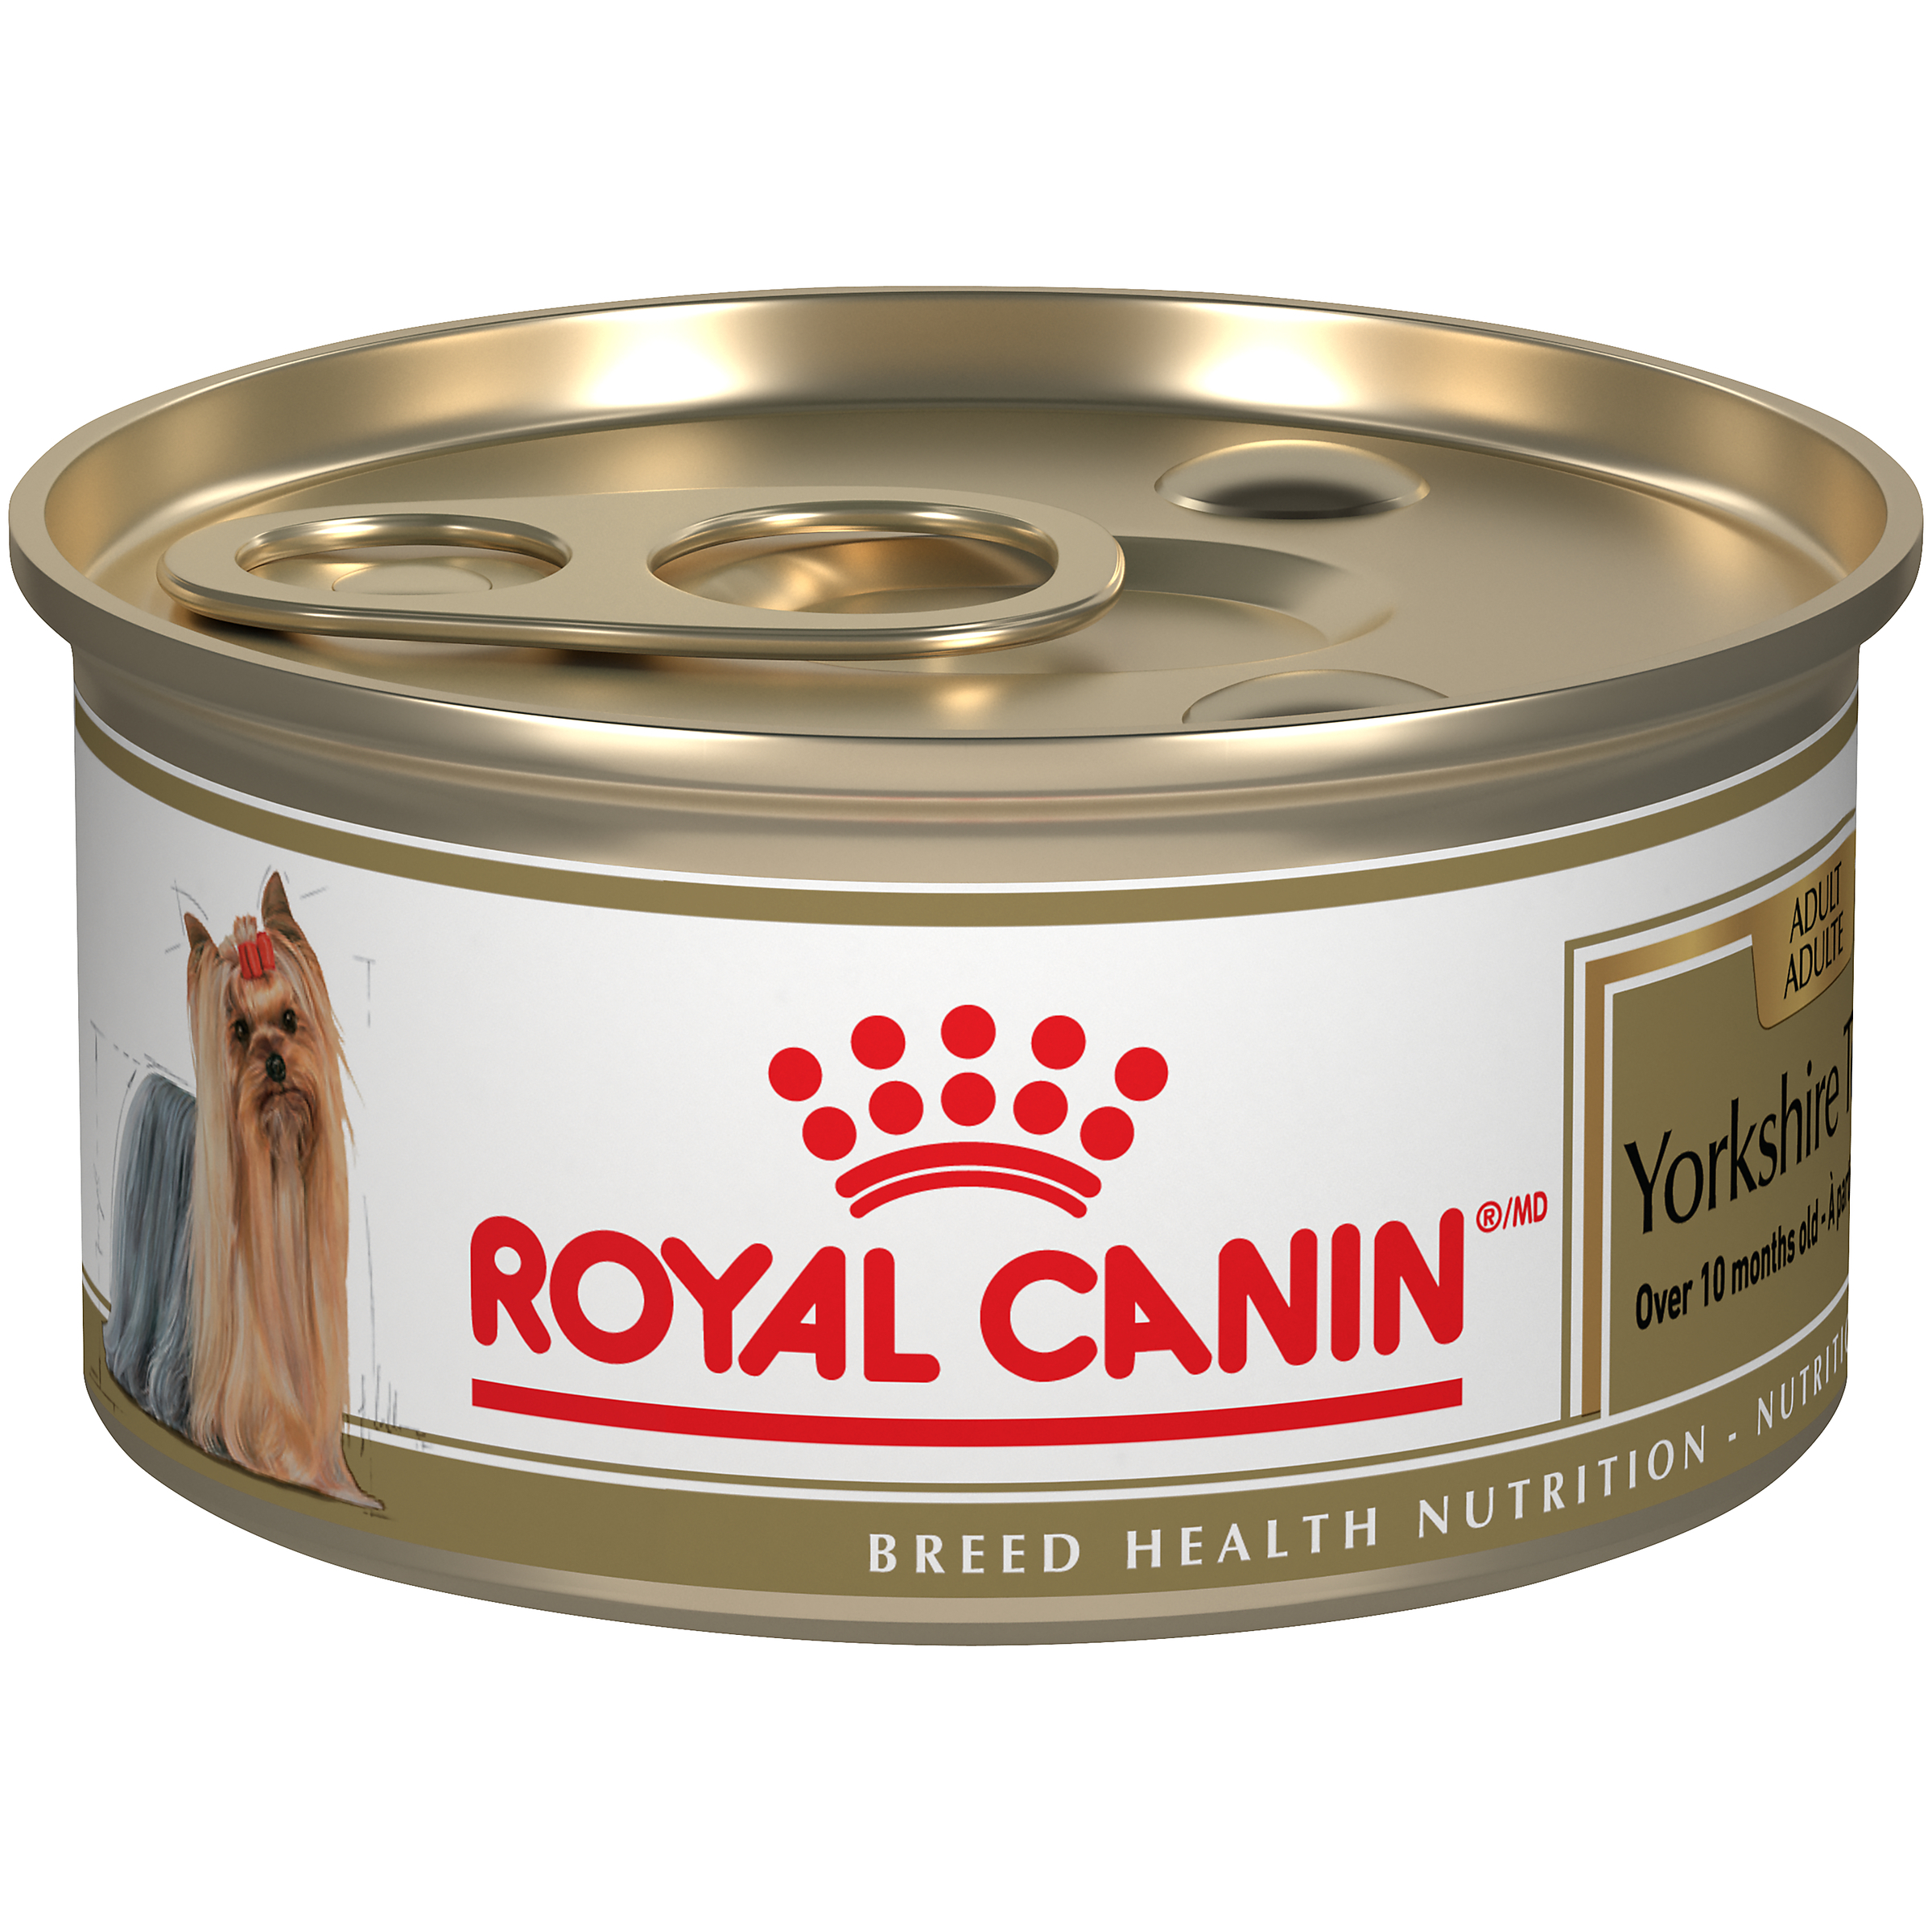 Royal Canin Breed Health Nutrition Yorkshire Terrier Loaf In Sauce Dog Food